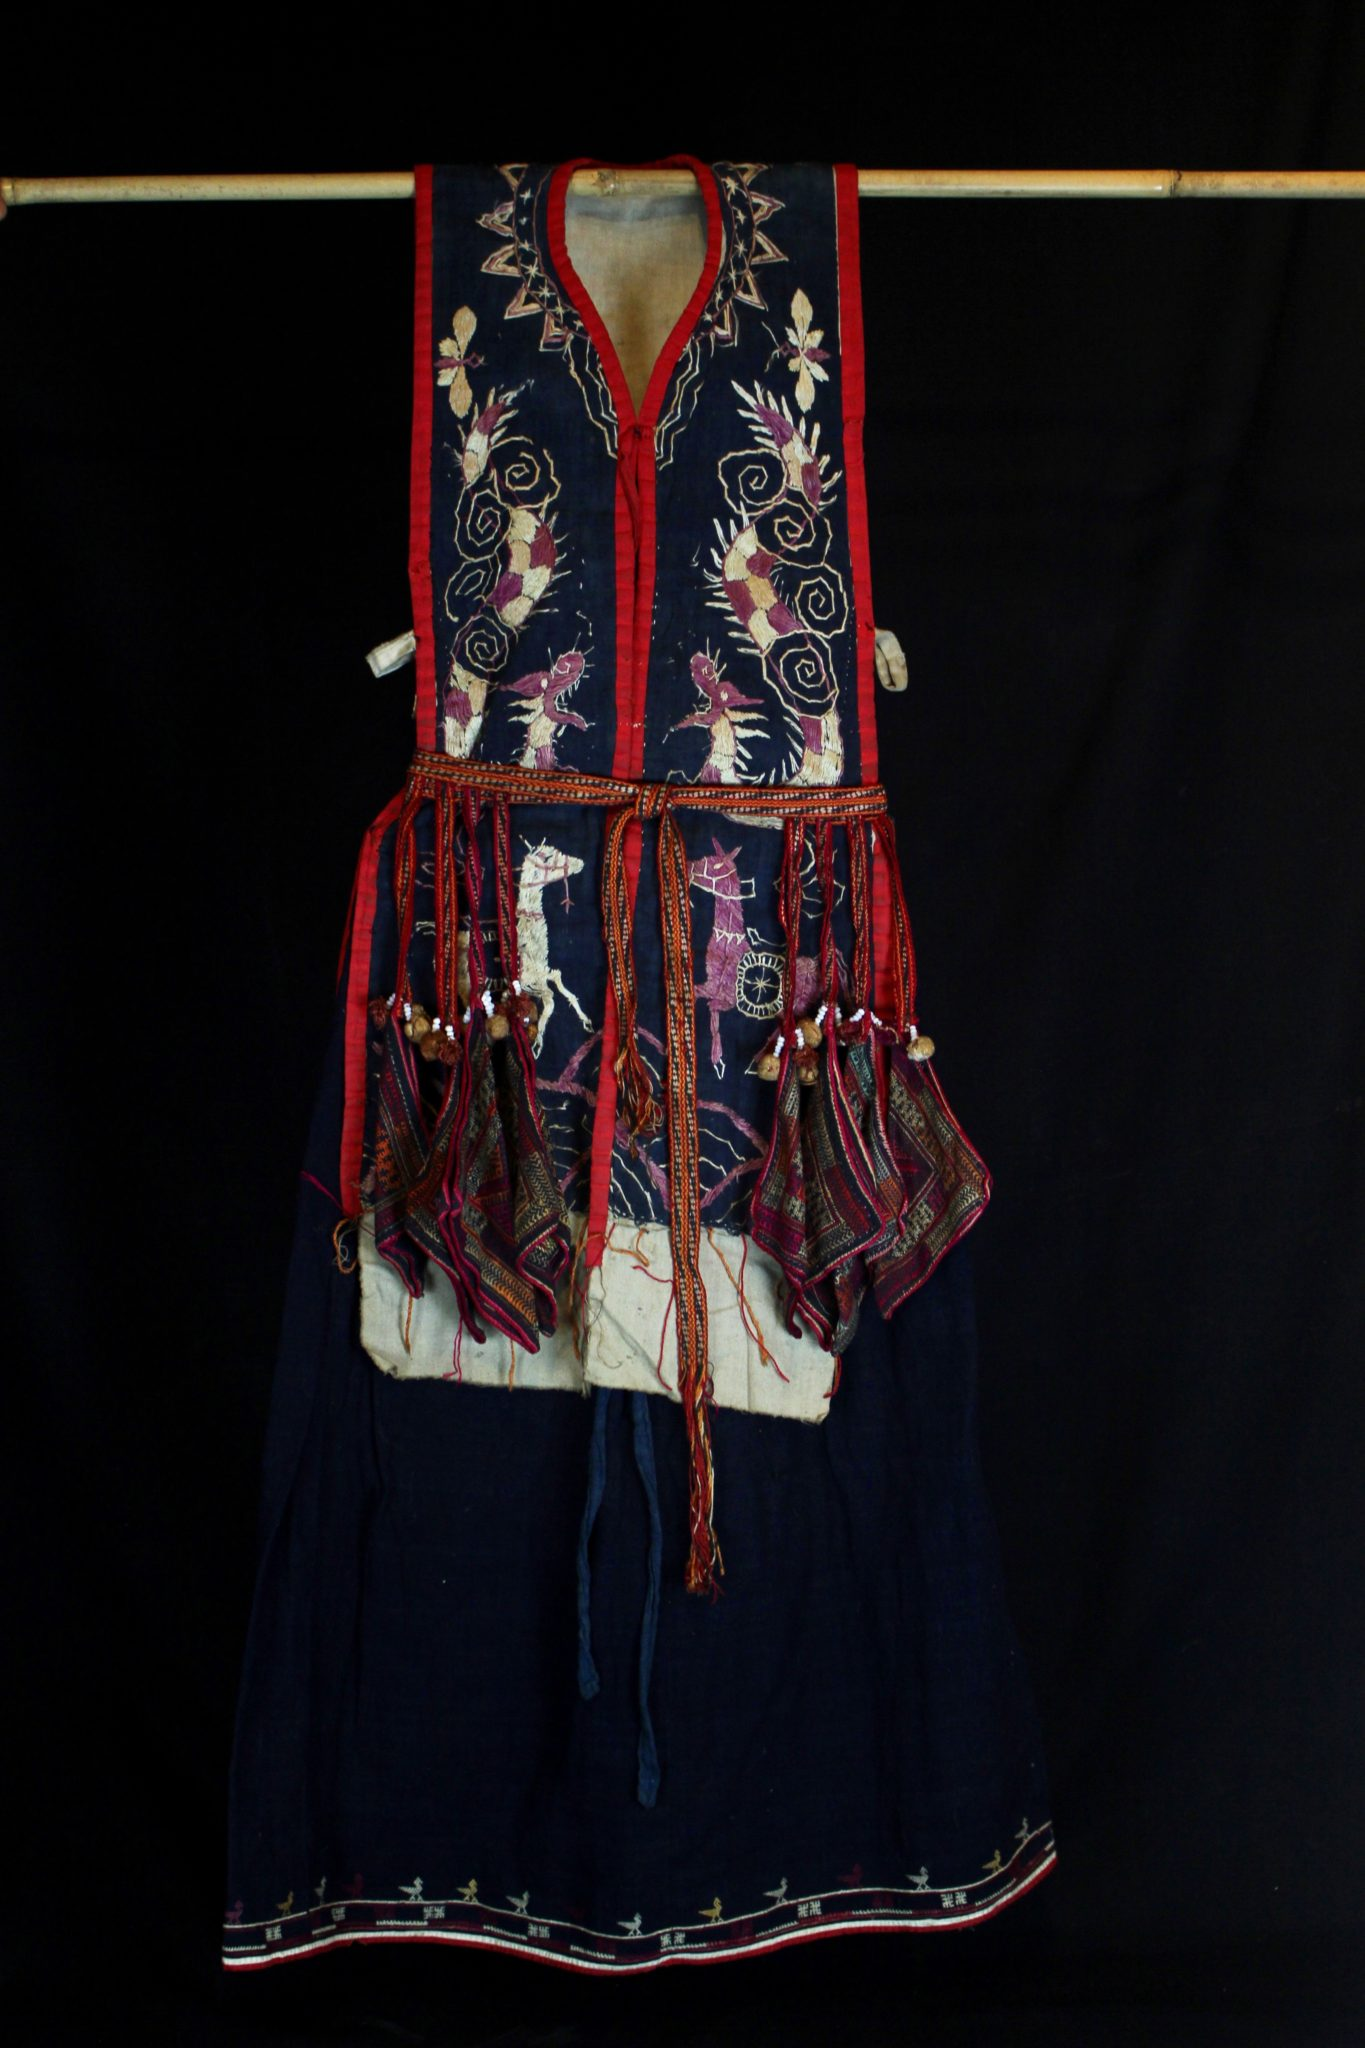 """Shaman's Costume Tunic and Belt, Vietnam, Yao people, Late 19th c, Cotton, indigo, silk embroidery, Worn only by high level shaman. The motif typically includes all the deities of heaven to clothe the shaman in the protection of the universe. Not a vain adornment, it is a reminder of man's place in the hierarchical order. Originally a female costume. Long ago shamans were women and men the providers. Not being encumbered by childbirth and rearing, men replaces women as shamans but retained this part of the sacred costume. *more information available. 47"""" x 27 ½"""" x 3"""", $3100."""